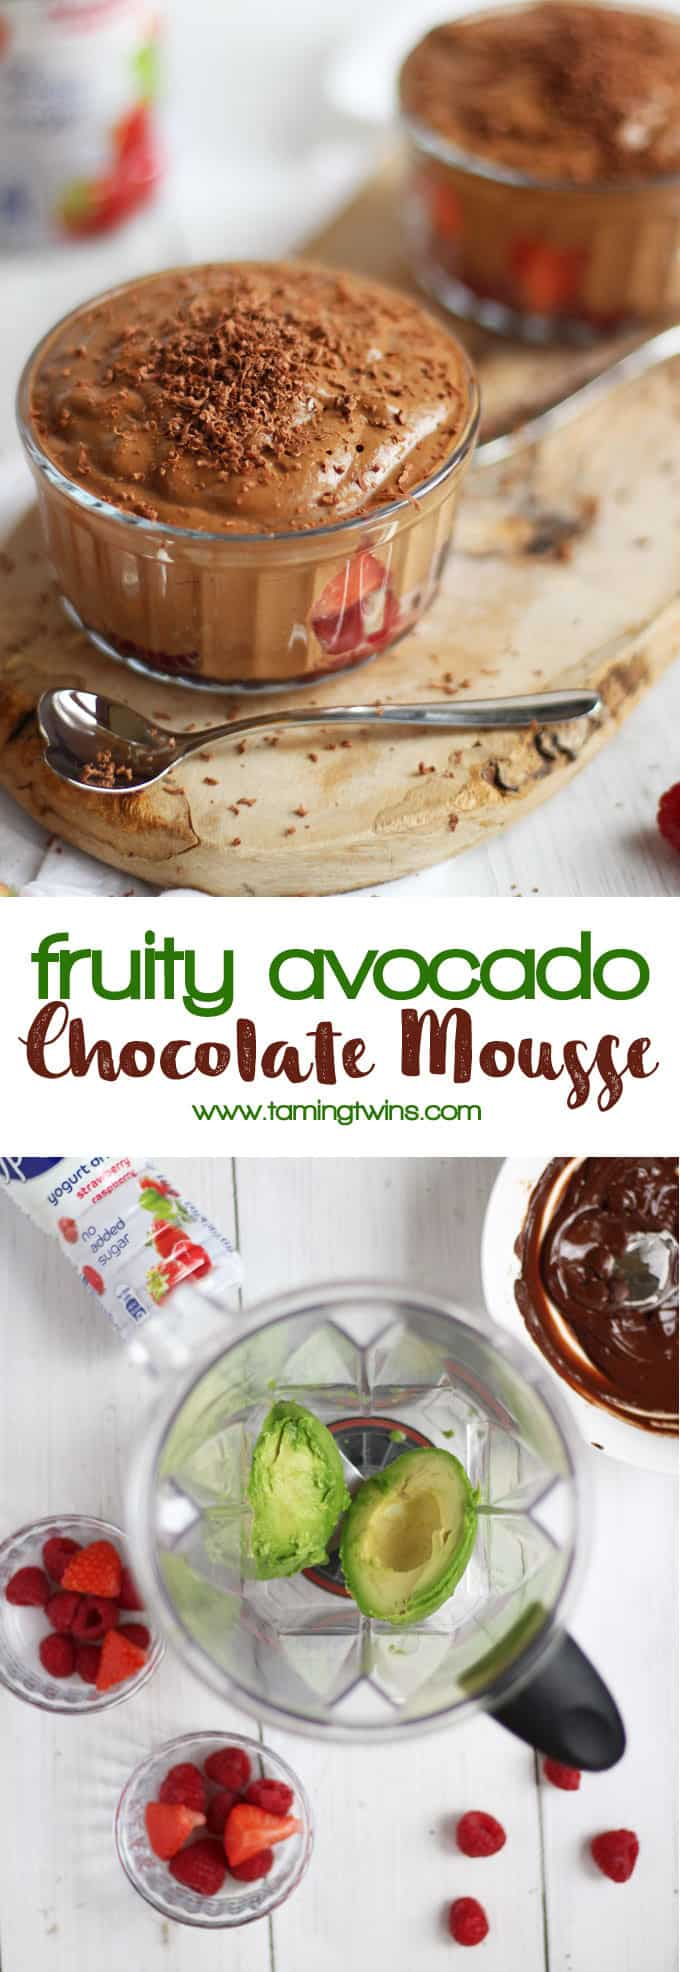 Fruity avocado chocolate mousse - a healthier, lighter chocolate mousse, made with avocados for good fats and Optiwell yoghurt drink and berries for a fruity taste. Whizzed up in just a minute!